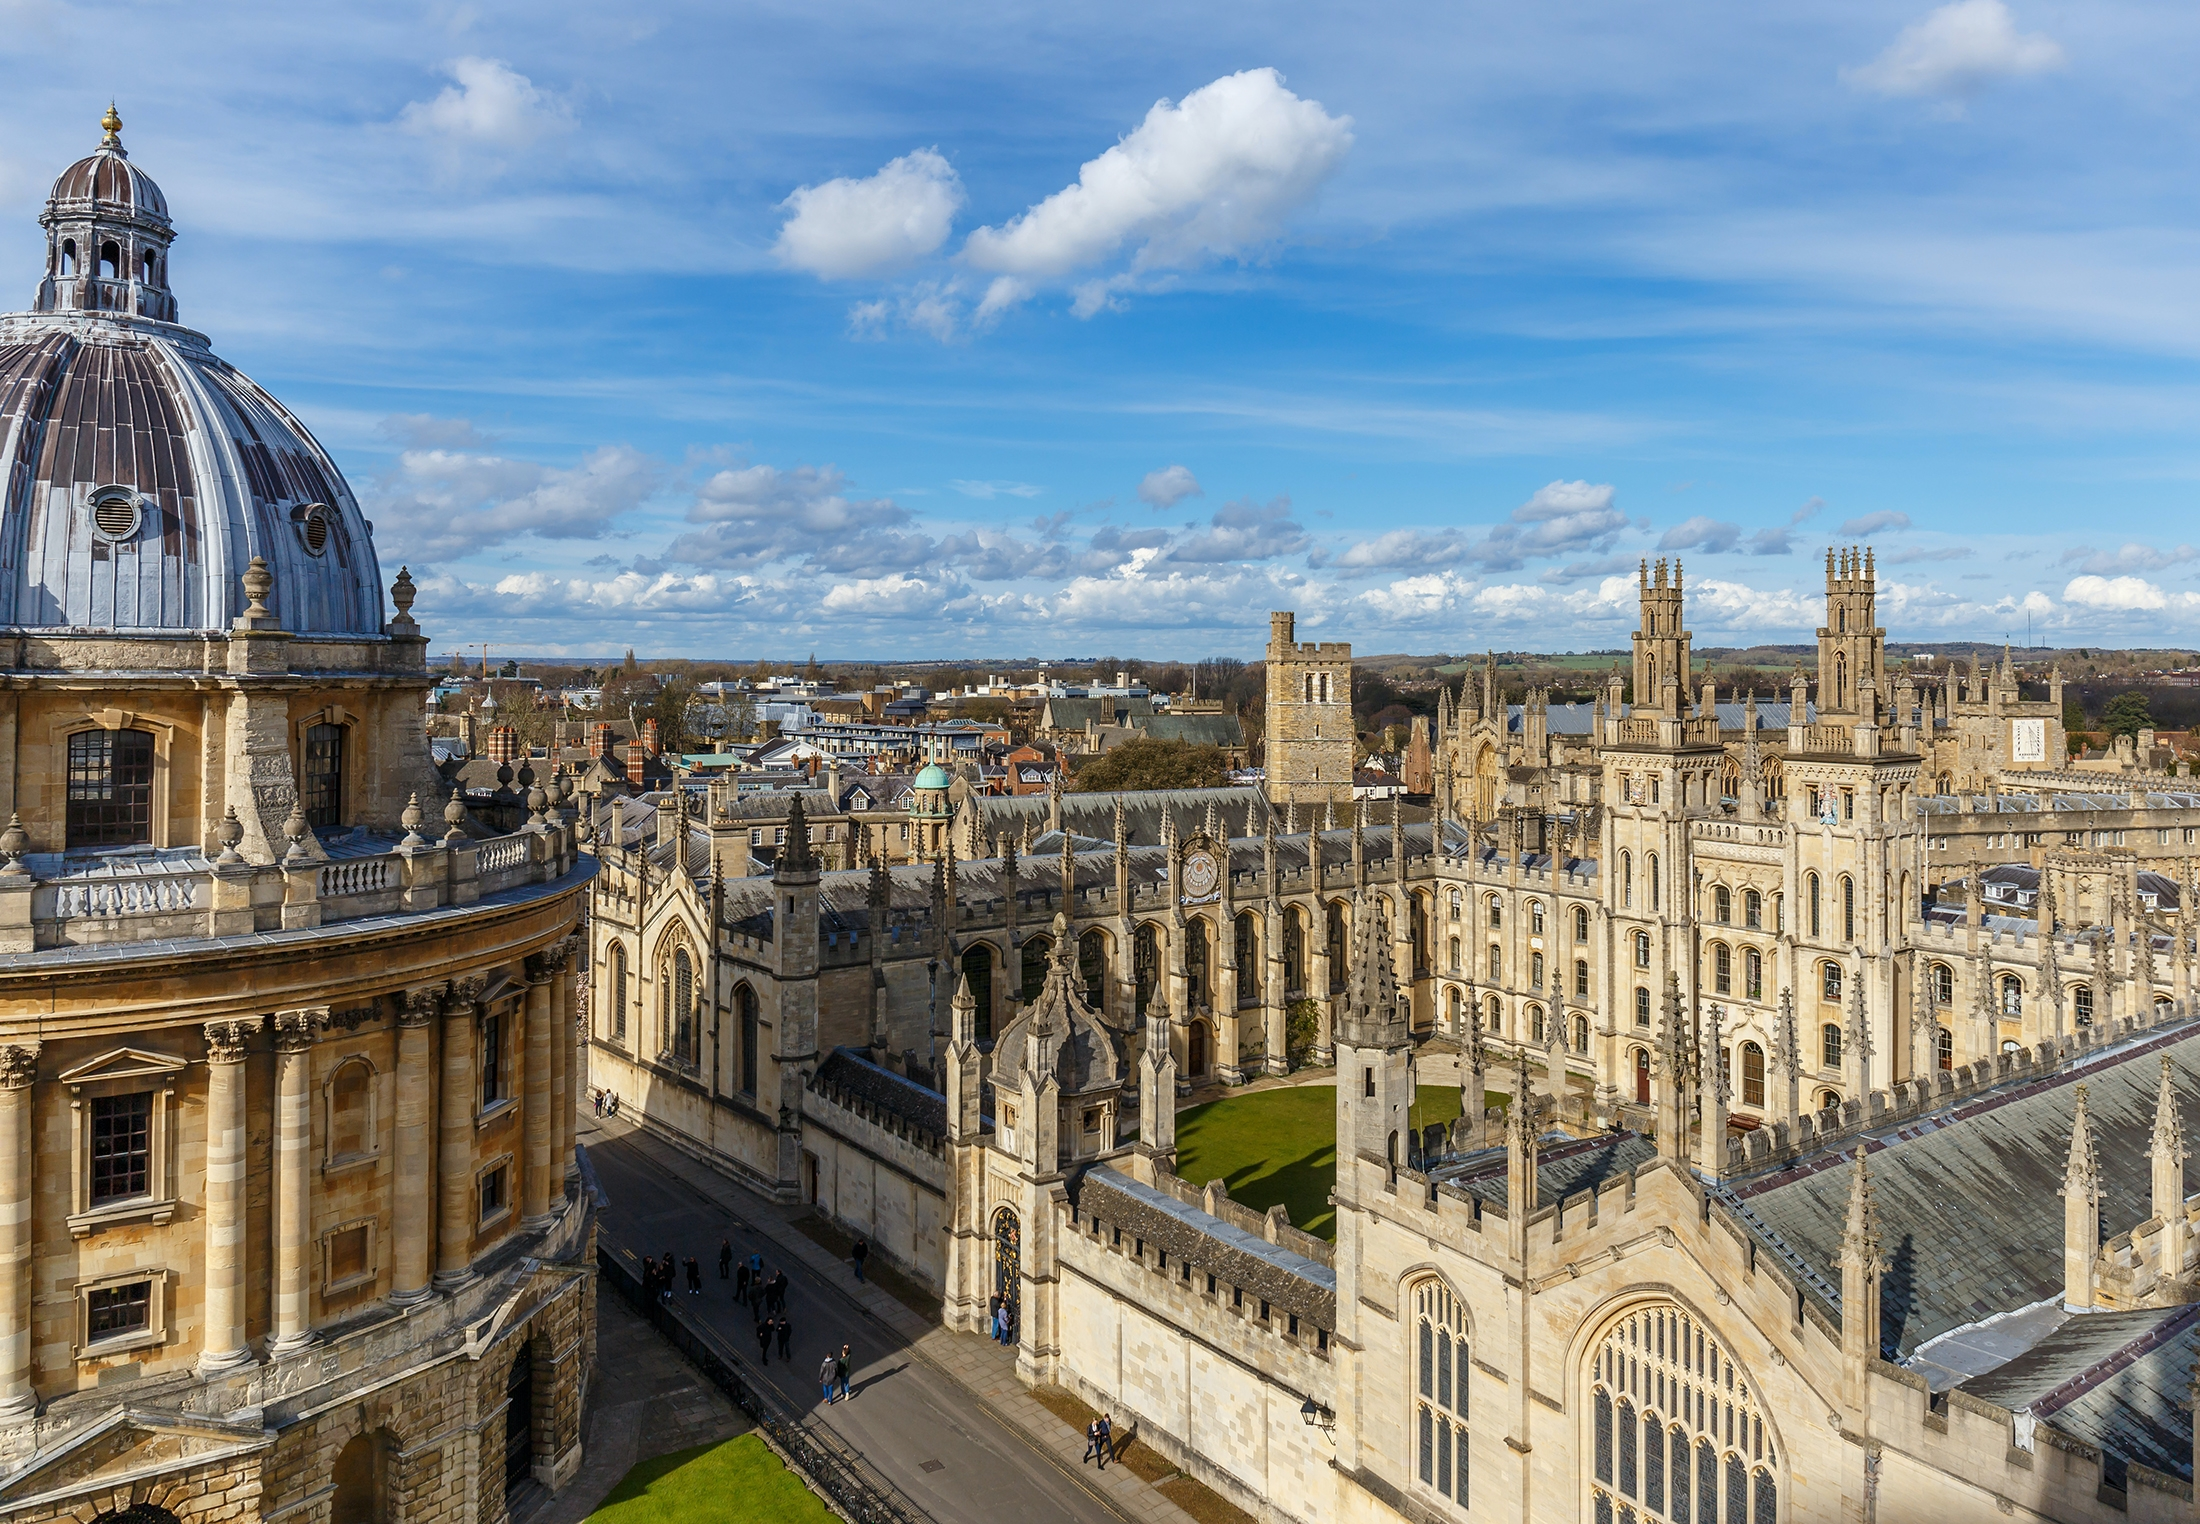 The world's oldest English-speaking university, founded in 1200